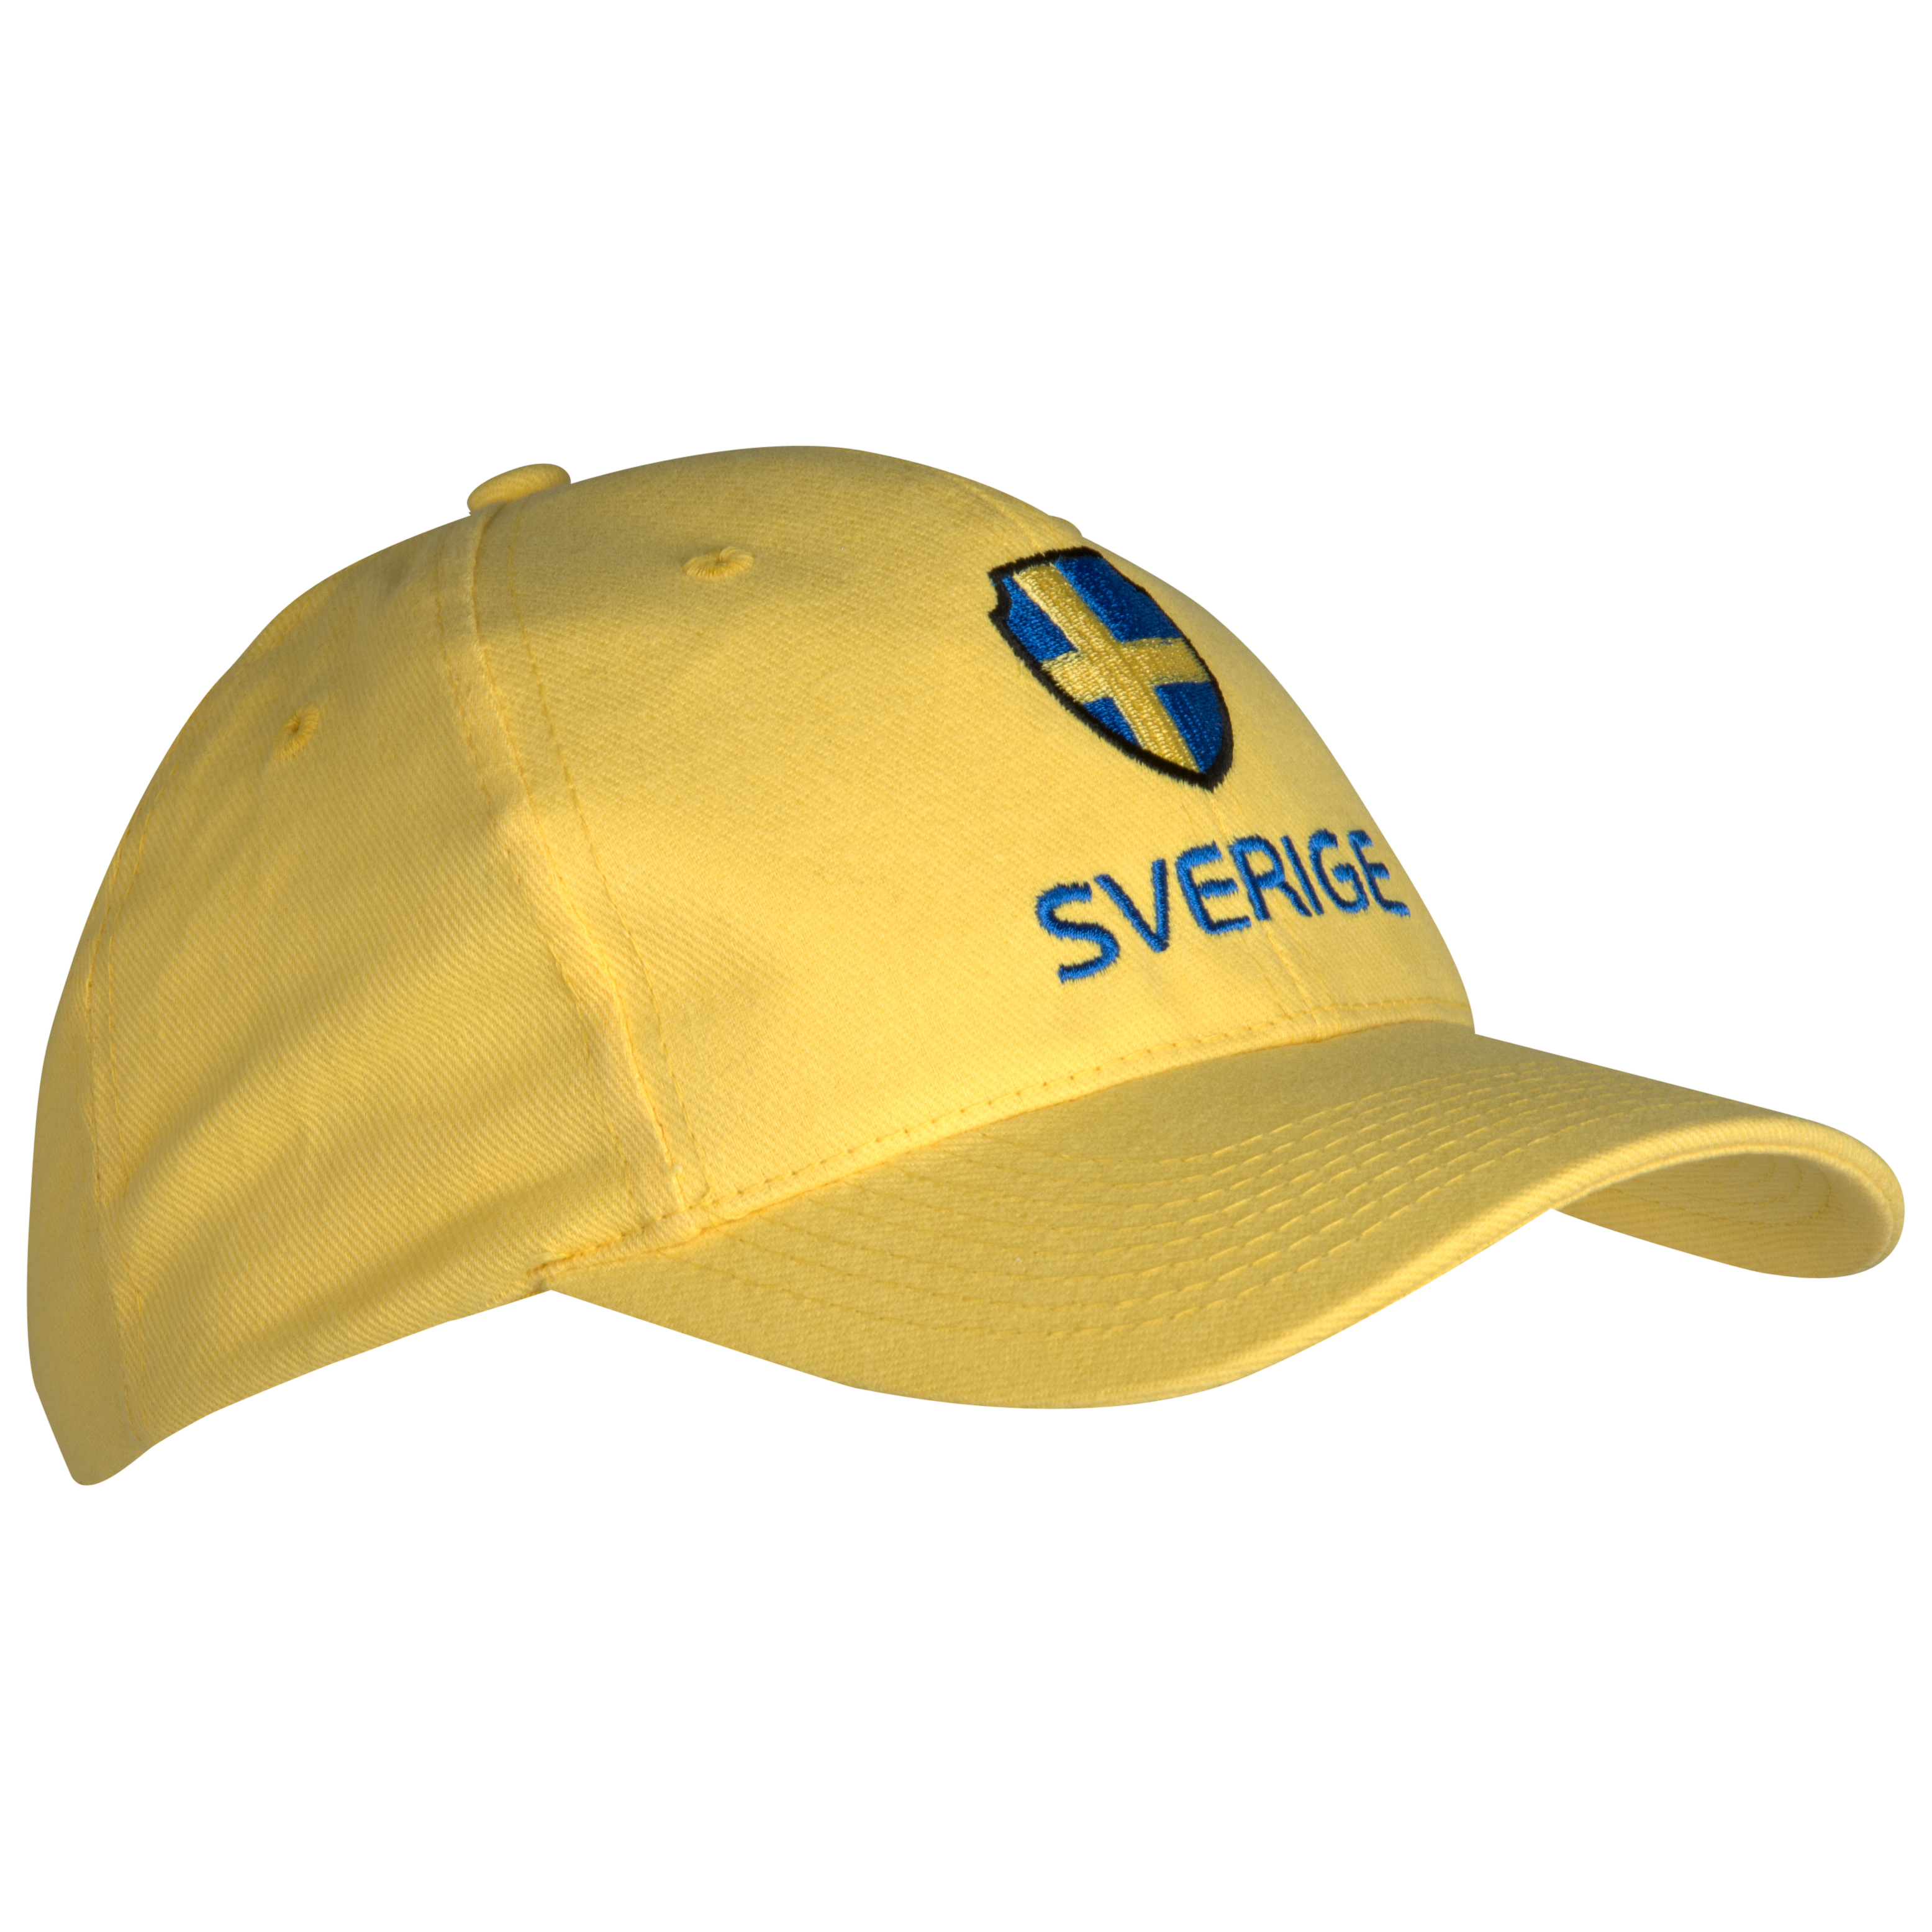 Euro 2012 Sweden Cap - Yellow/Blue